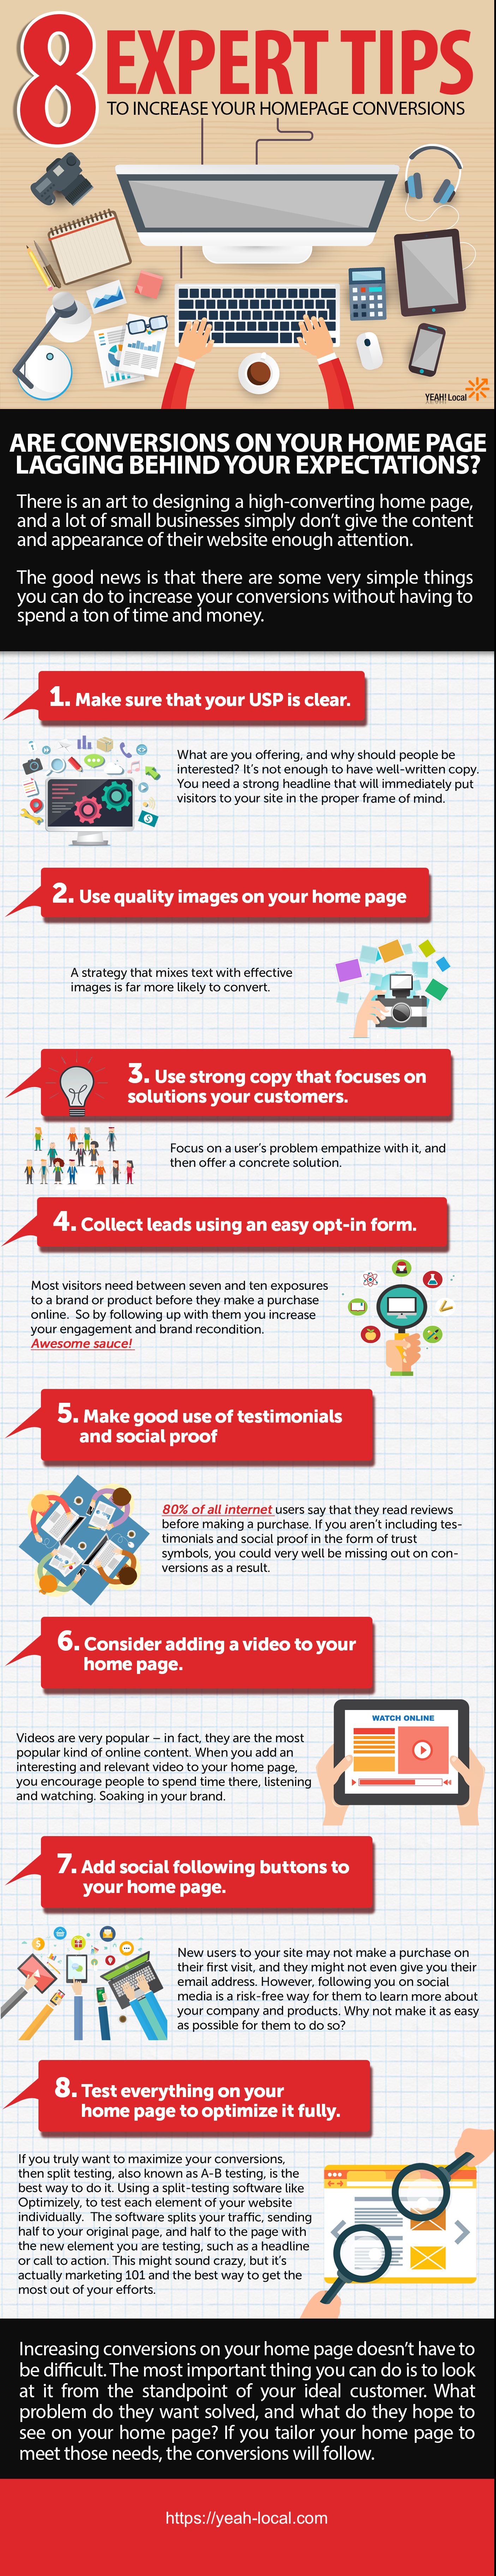 8 Expert Tips to Increase Your Homepage Conversions